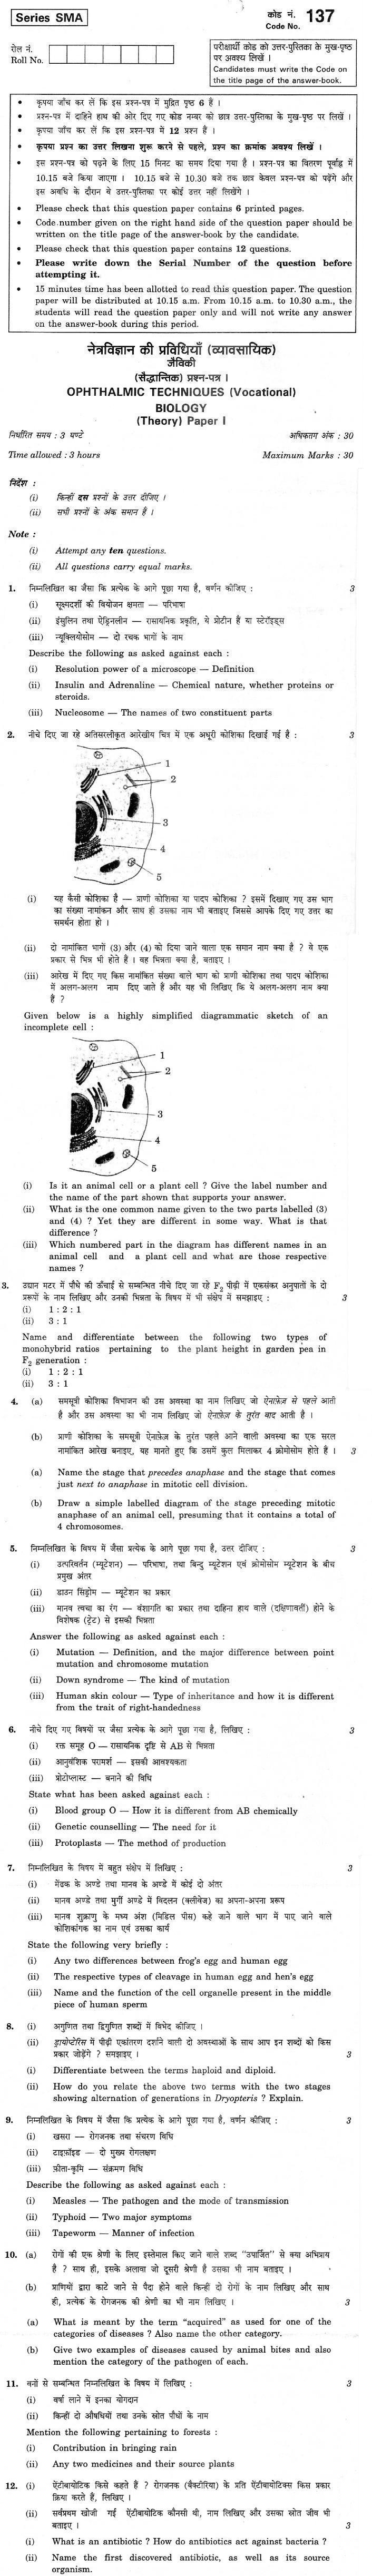 CBSE Class XII Previous Year Question Paper 2012 Ophthalmic Techniques (Vocational) Biology